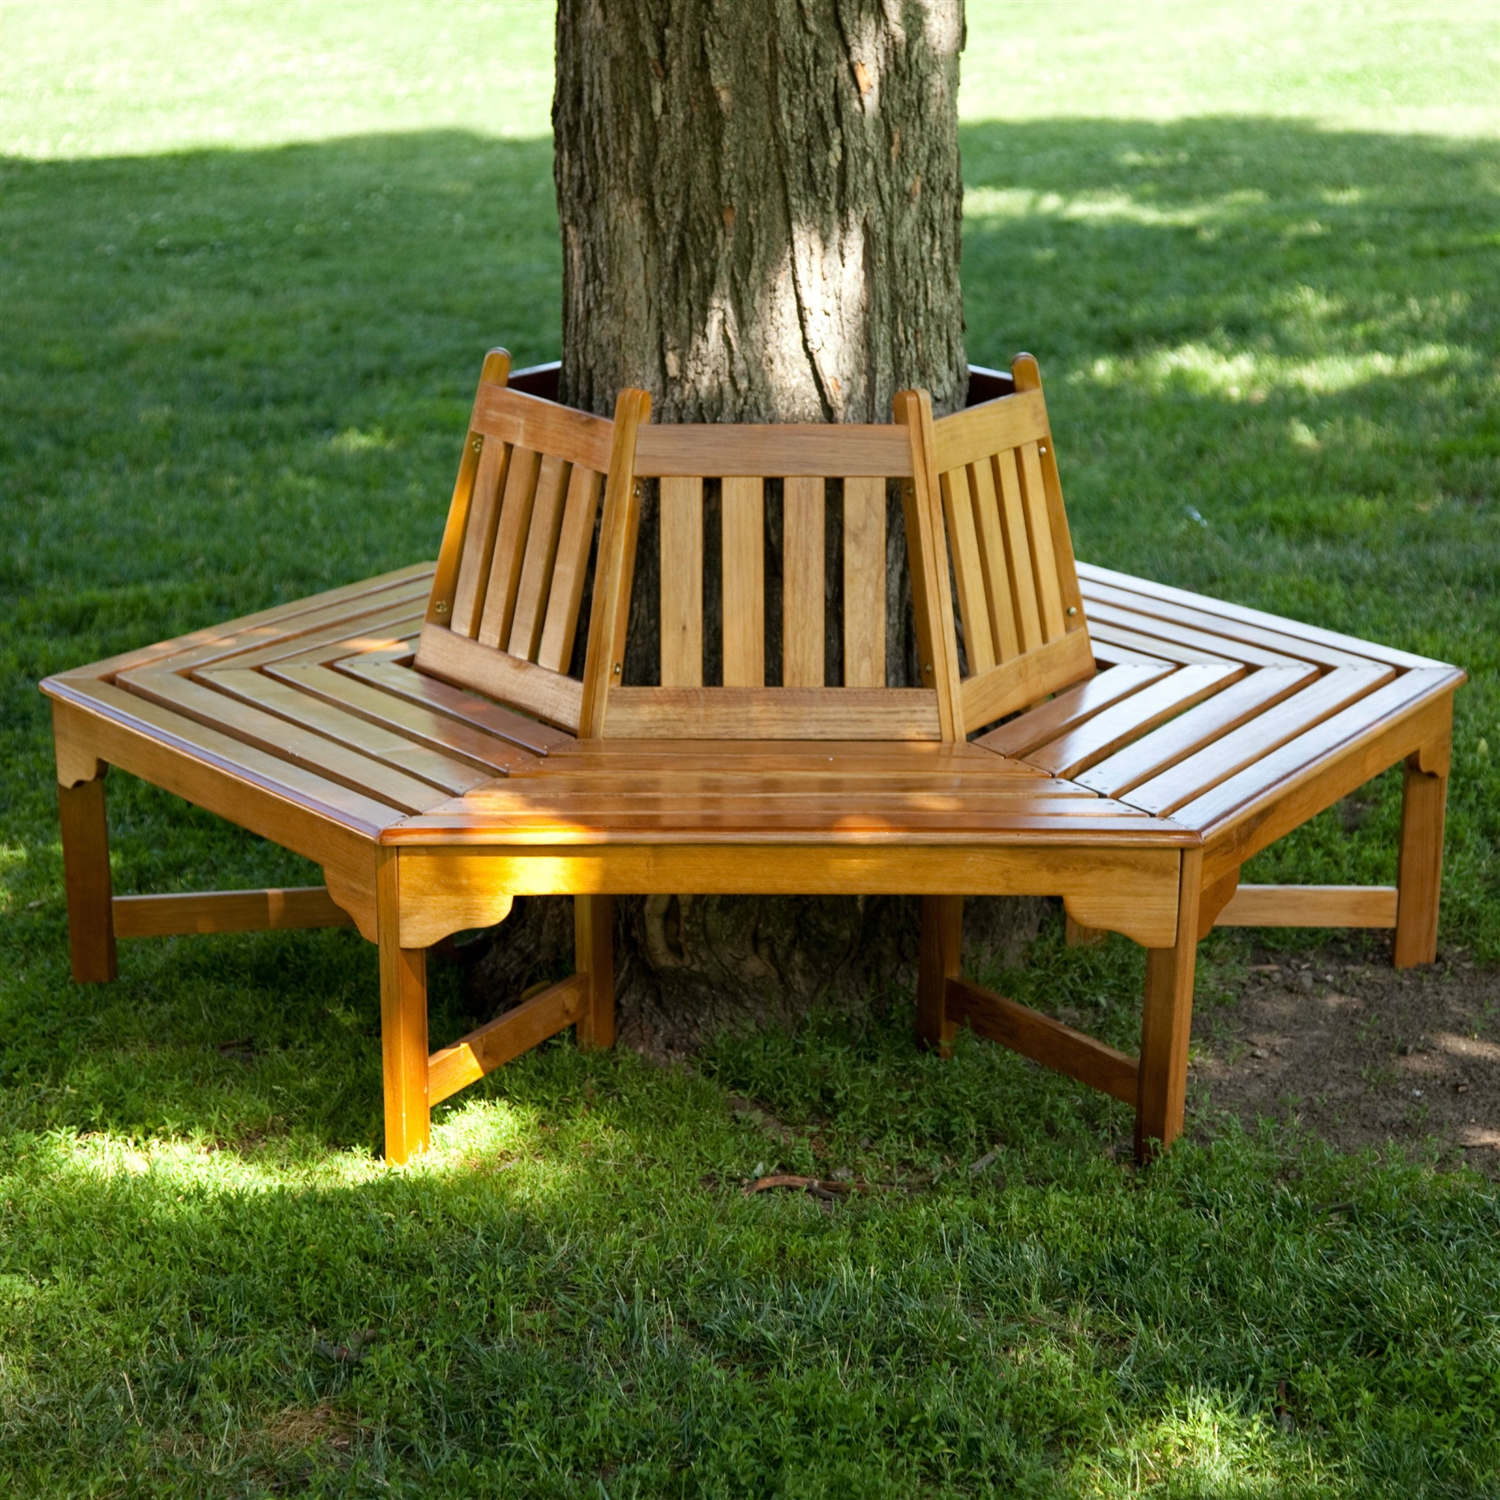 Weather Resistant Wood Outdoor Furniture